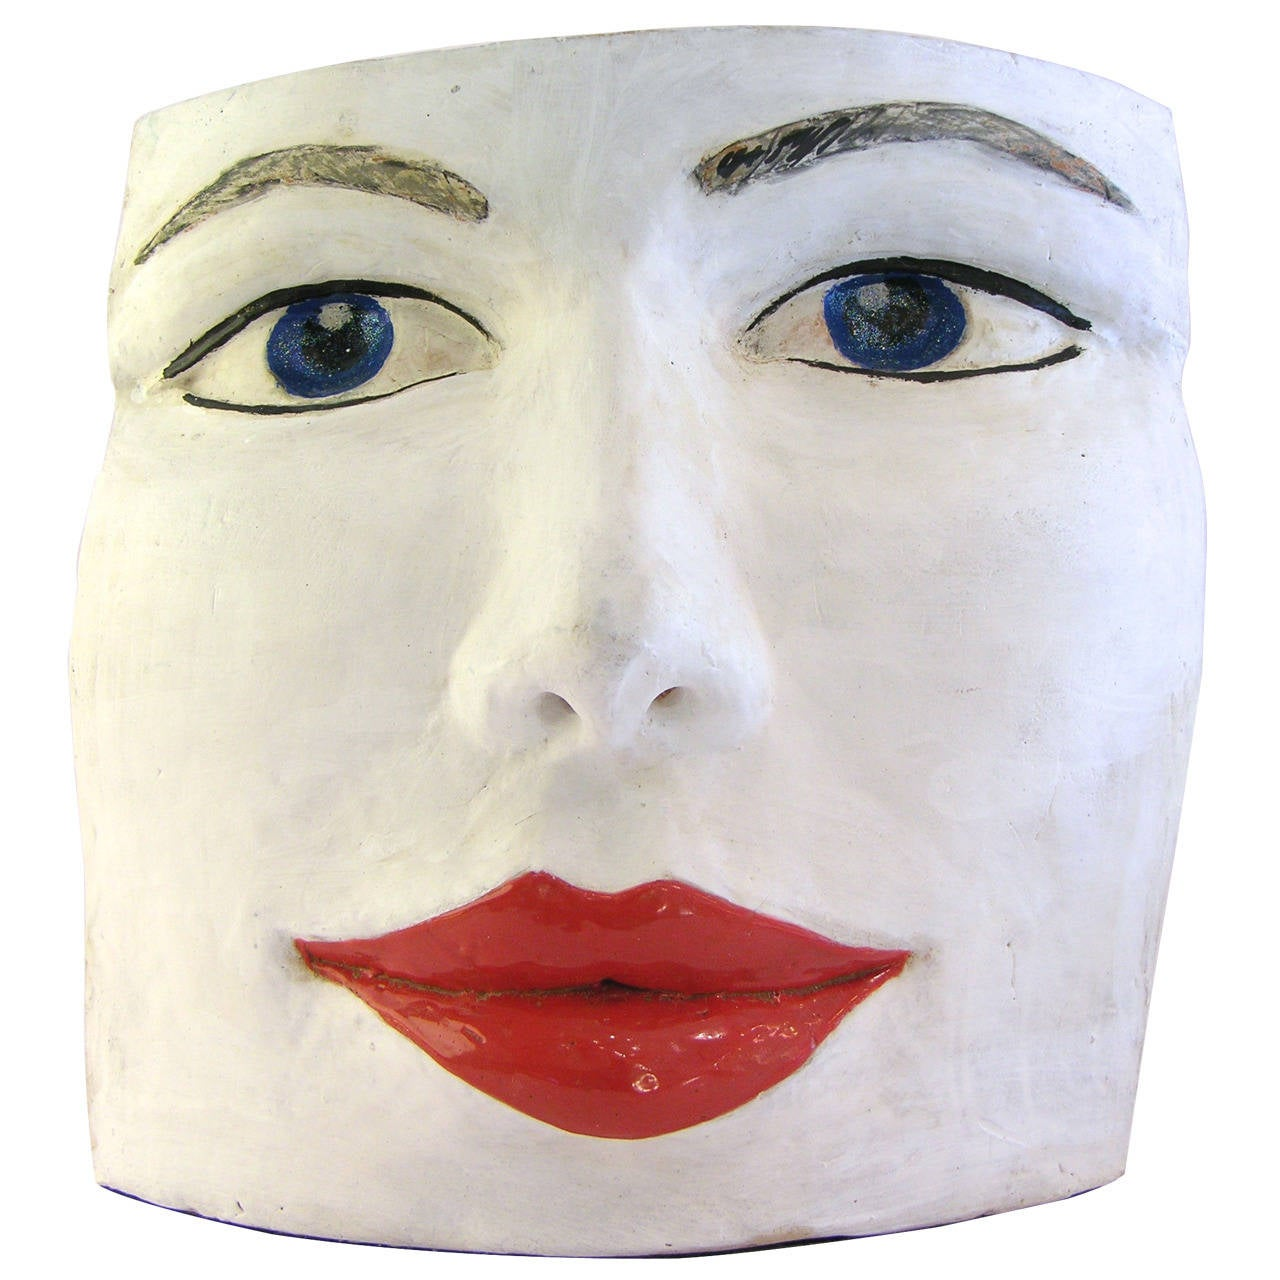 Blue Eyes Face Terra Cotta Sculpture by Ginestroni 1